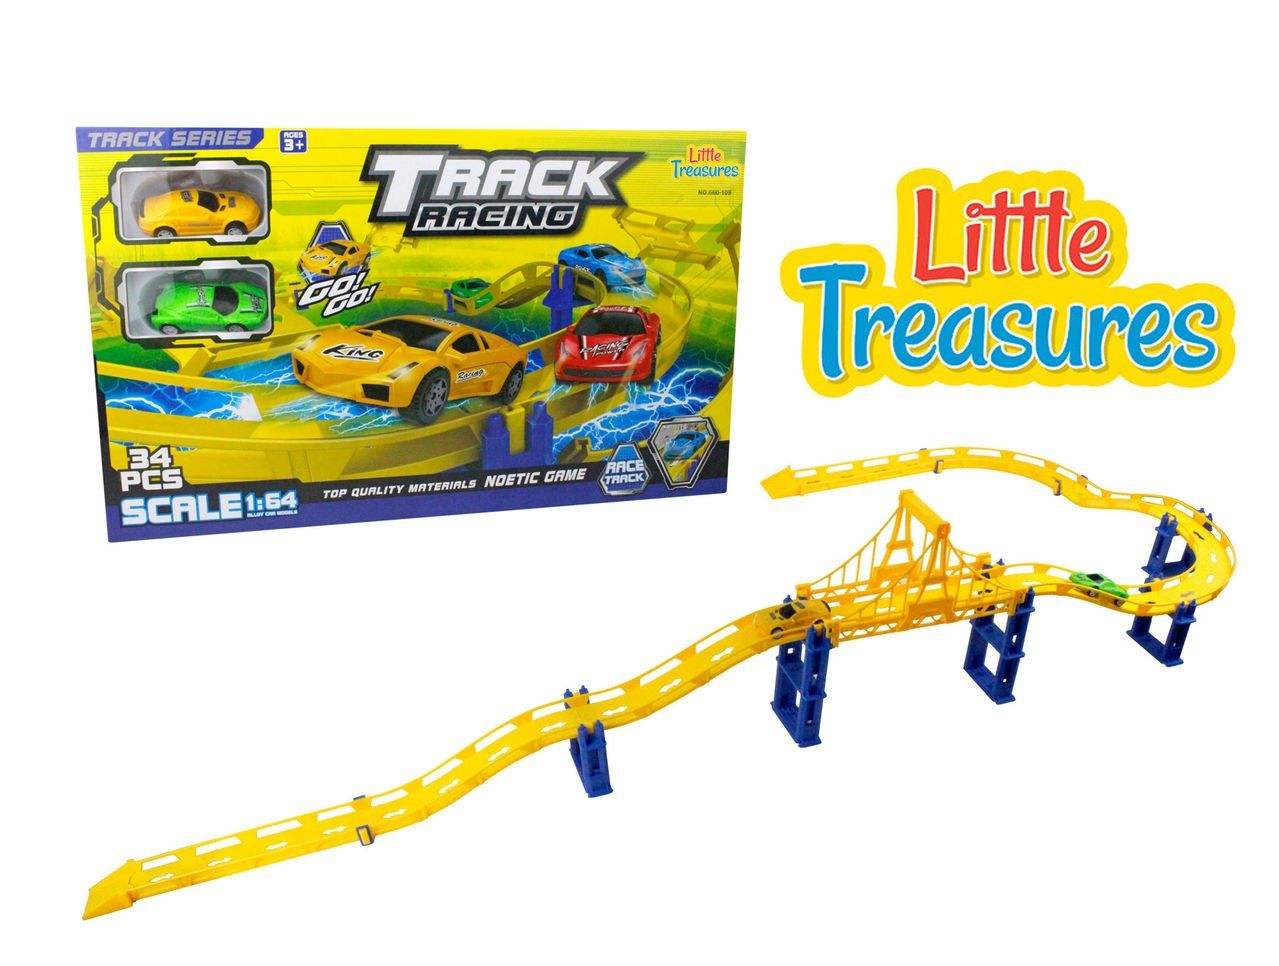 Car toys for girls  Track racing track  race over a city bridge up and down hills